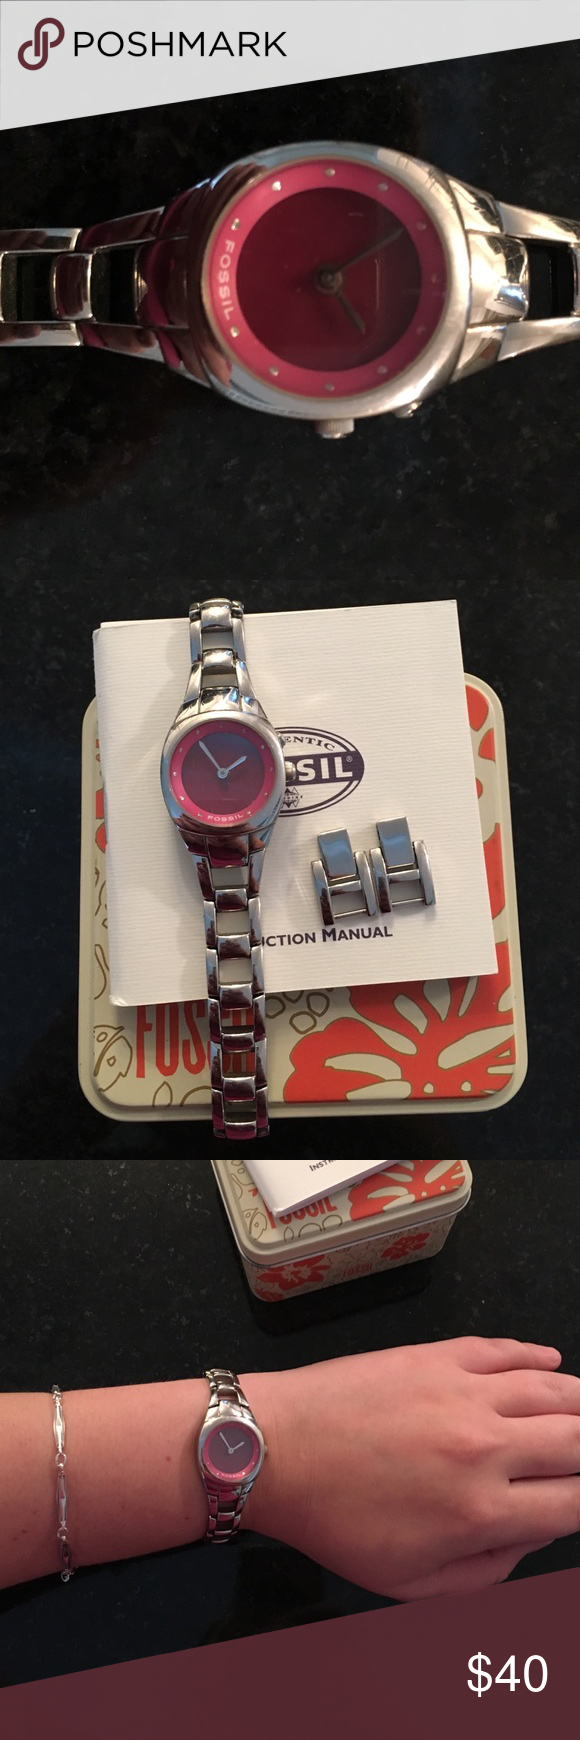 Fossil Watch Silver with pink face Fossil watch. Needs batteries. Original box and extra links included. Few signs of wear on glass, but overall in great condition. Fossil Accessories Watches